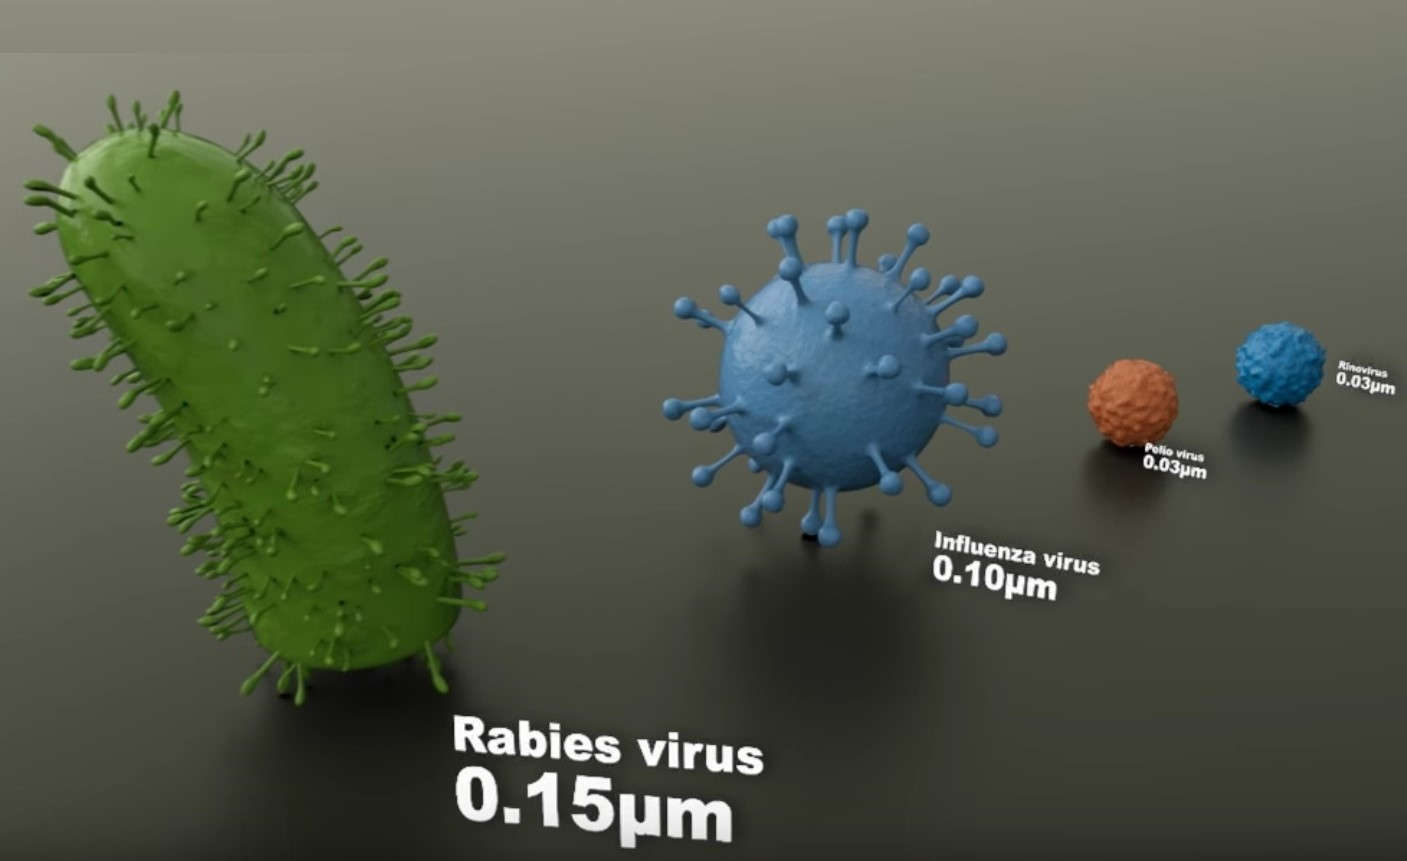 Microorganisms Size Comparison